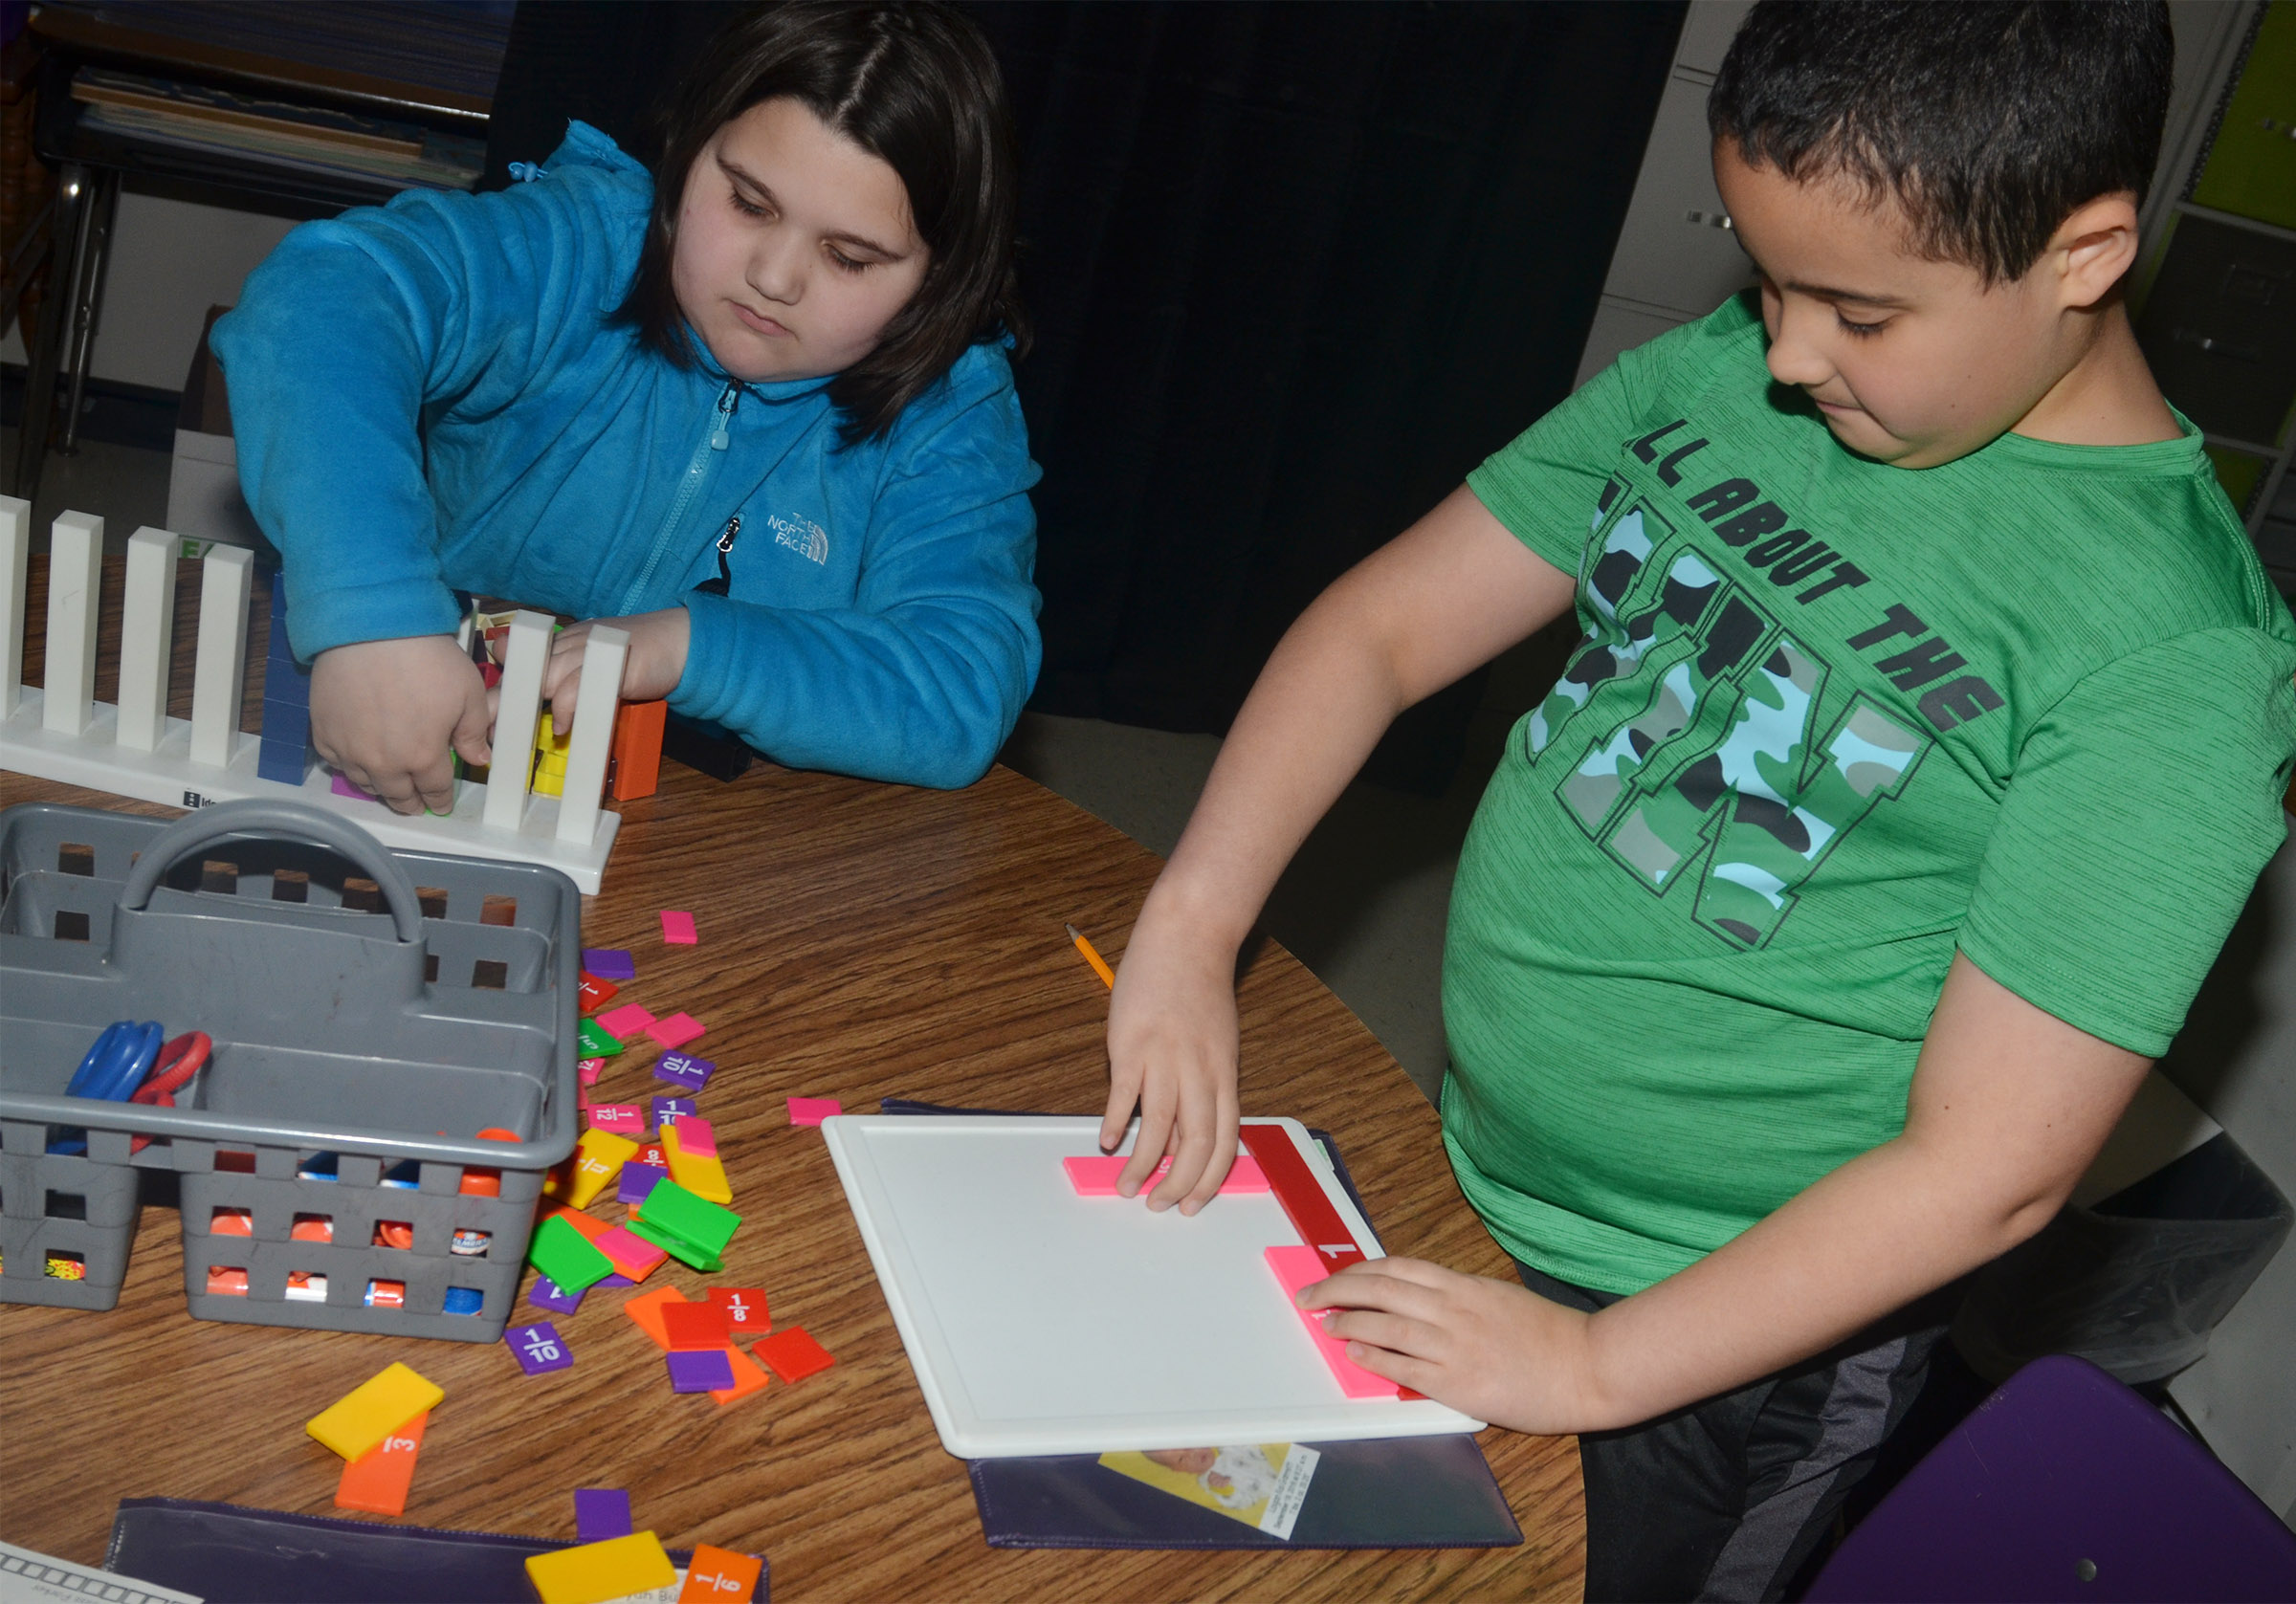 CES third-graders Kailei Hernandez, at left, and Tayshaun Hickman use blocks and a game to study fractions.